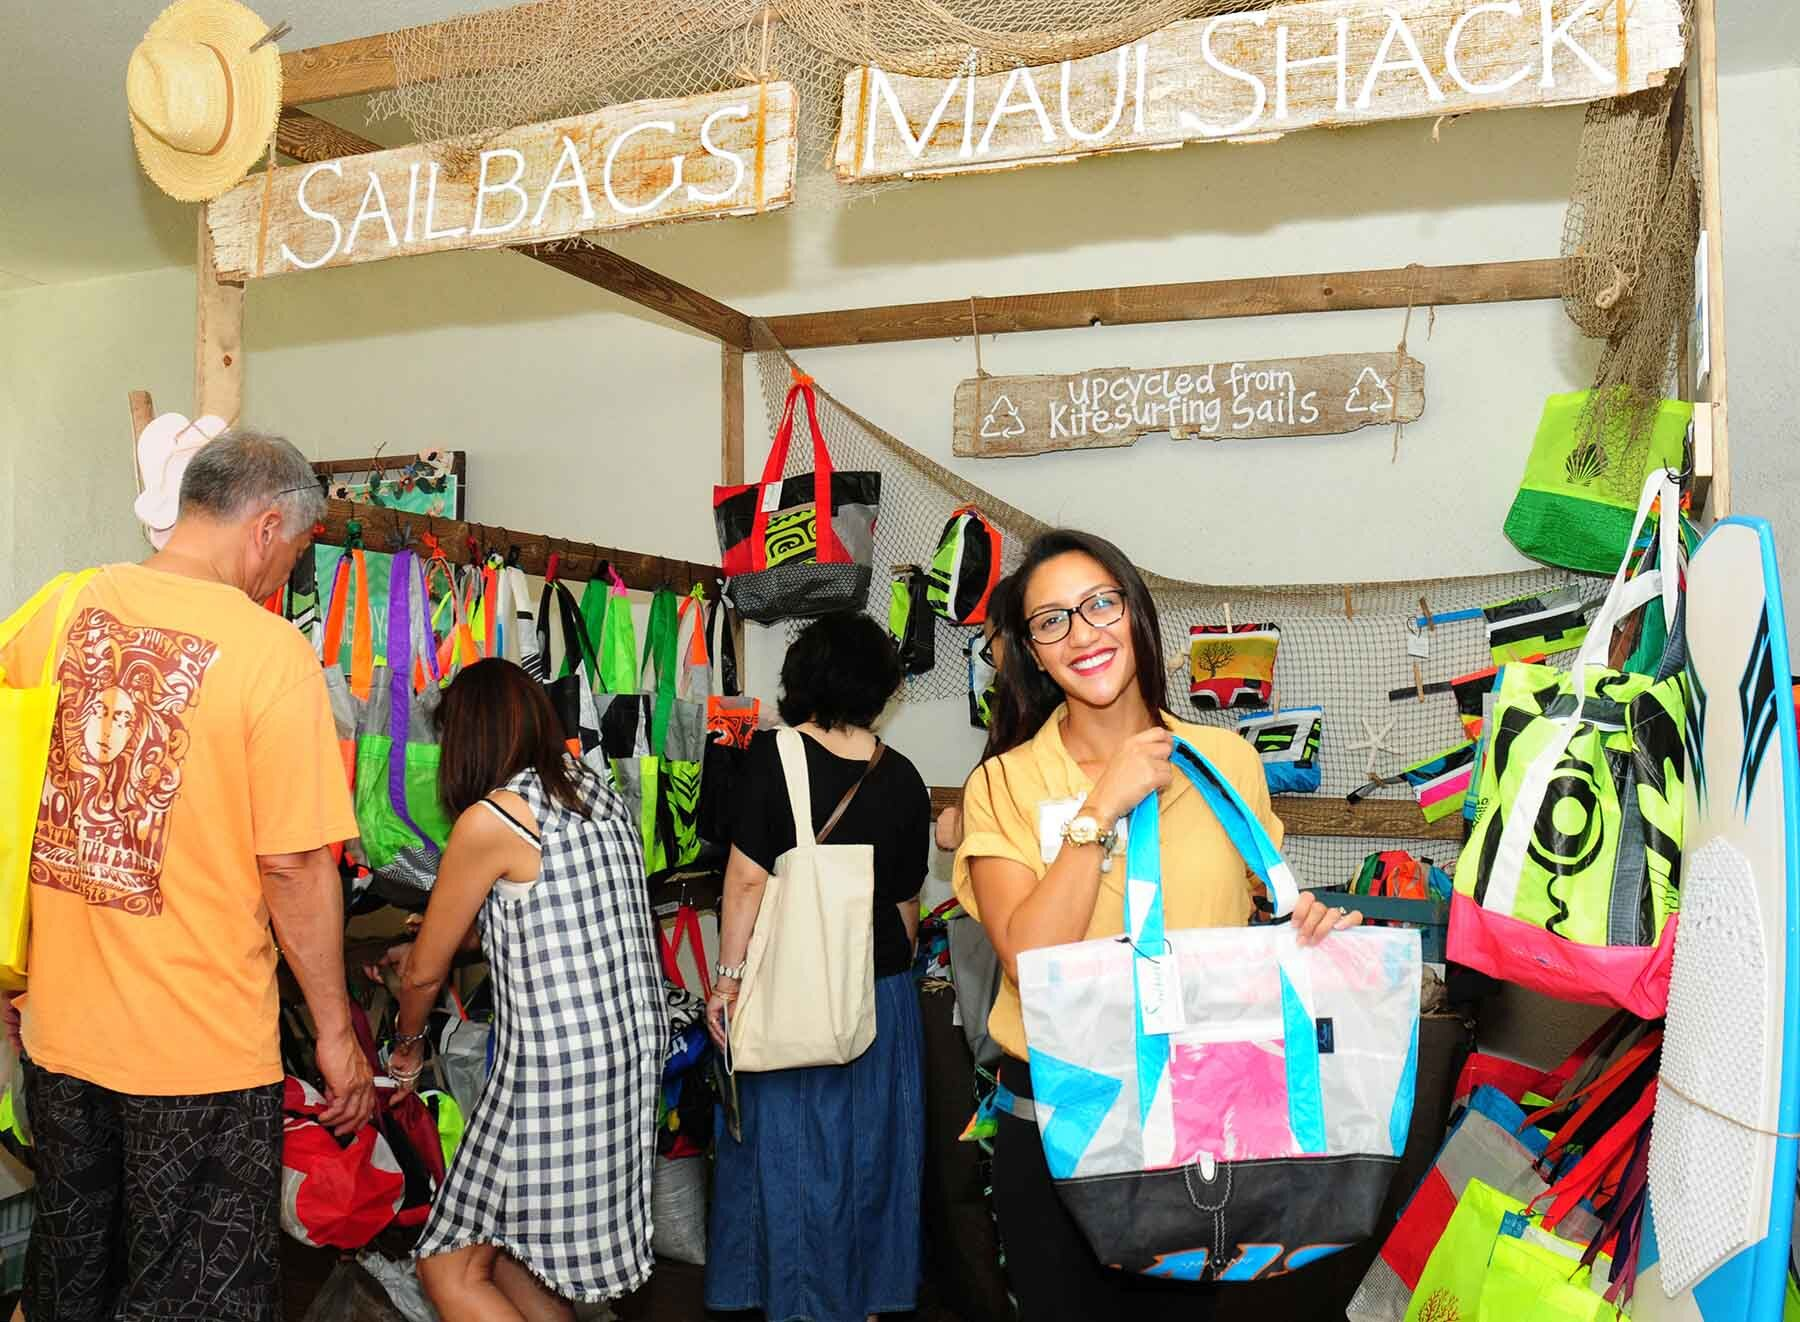 Sailbags Maui will feature their eco-savvy tote bags and accessories.